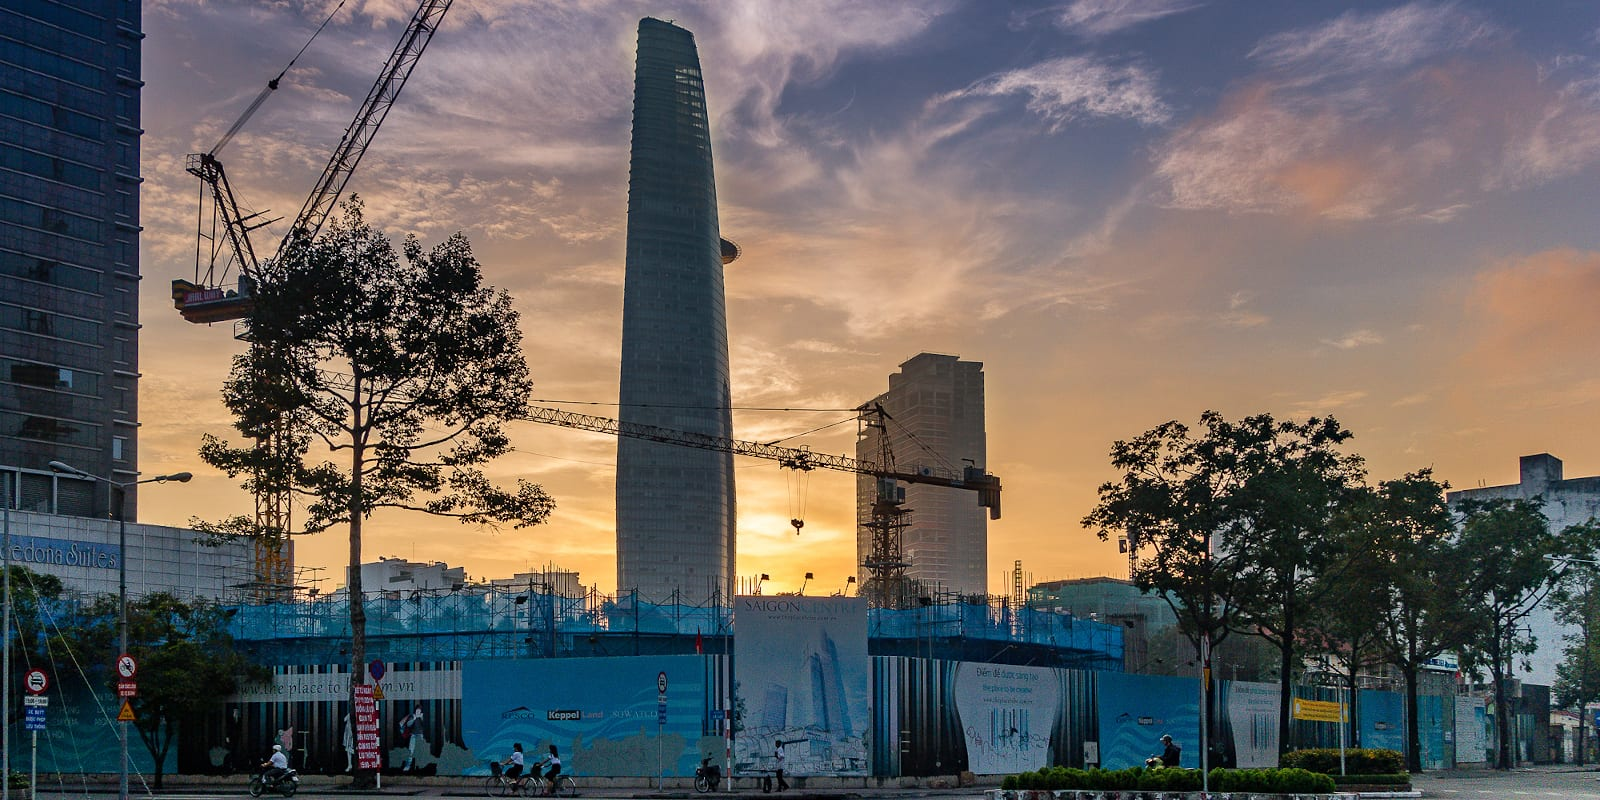 Image of the Bitexco Financial Tower in Ho Chi Minh City during sunrise